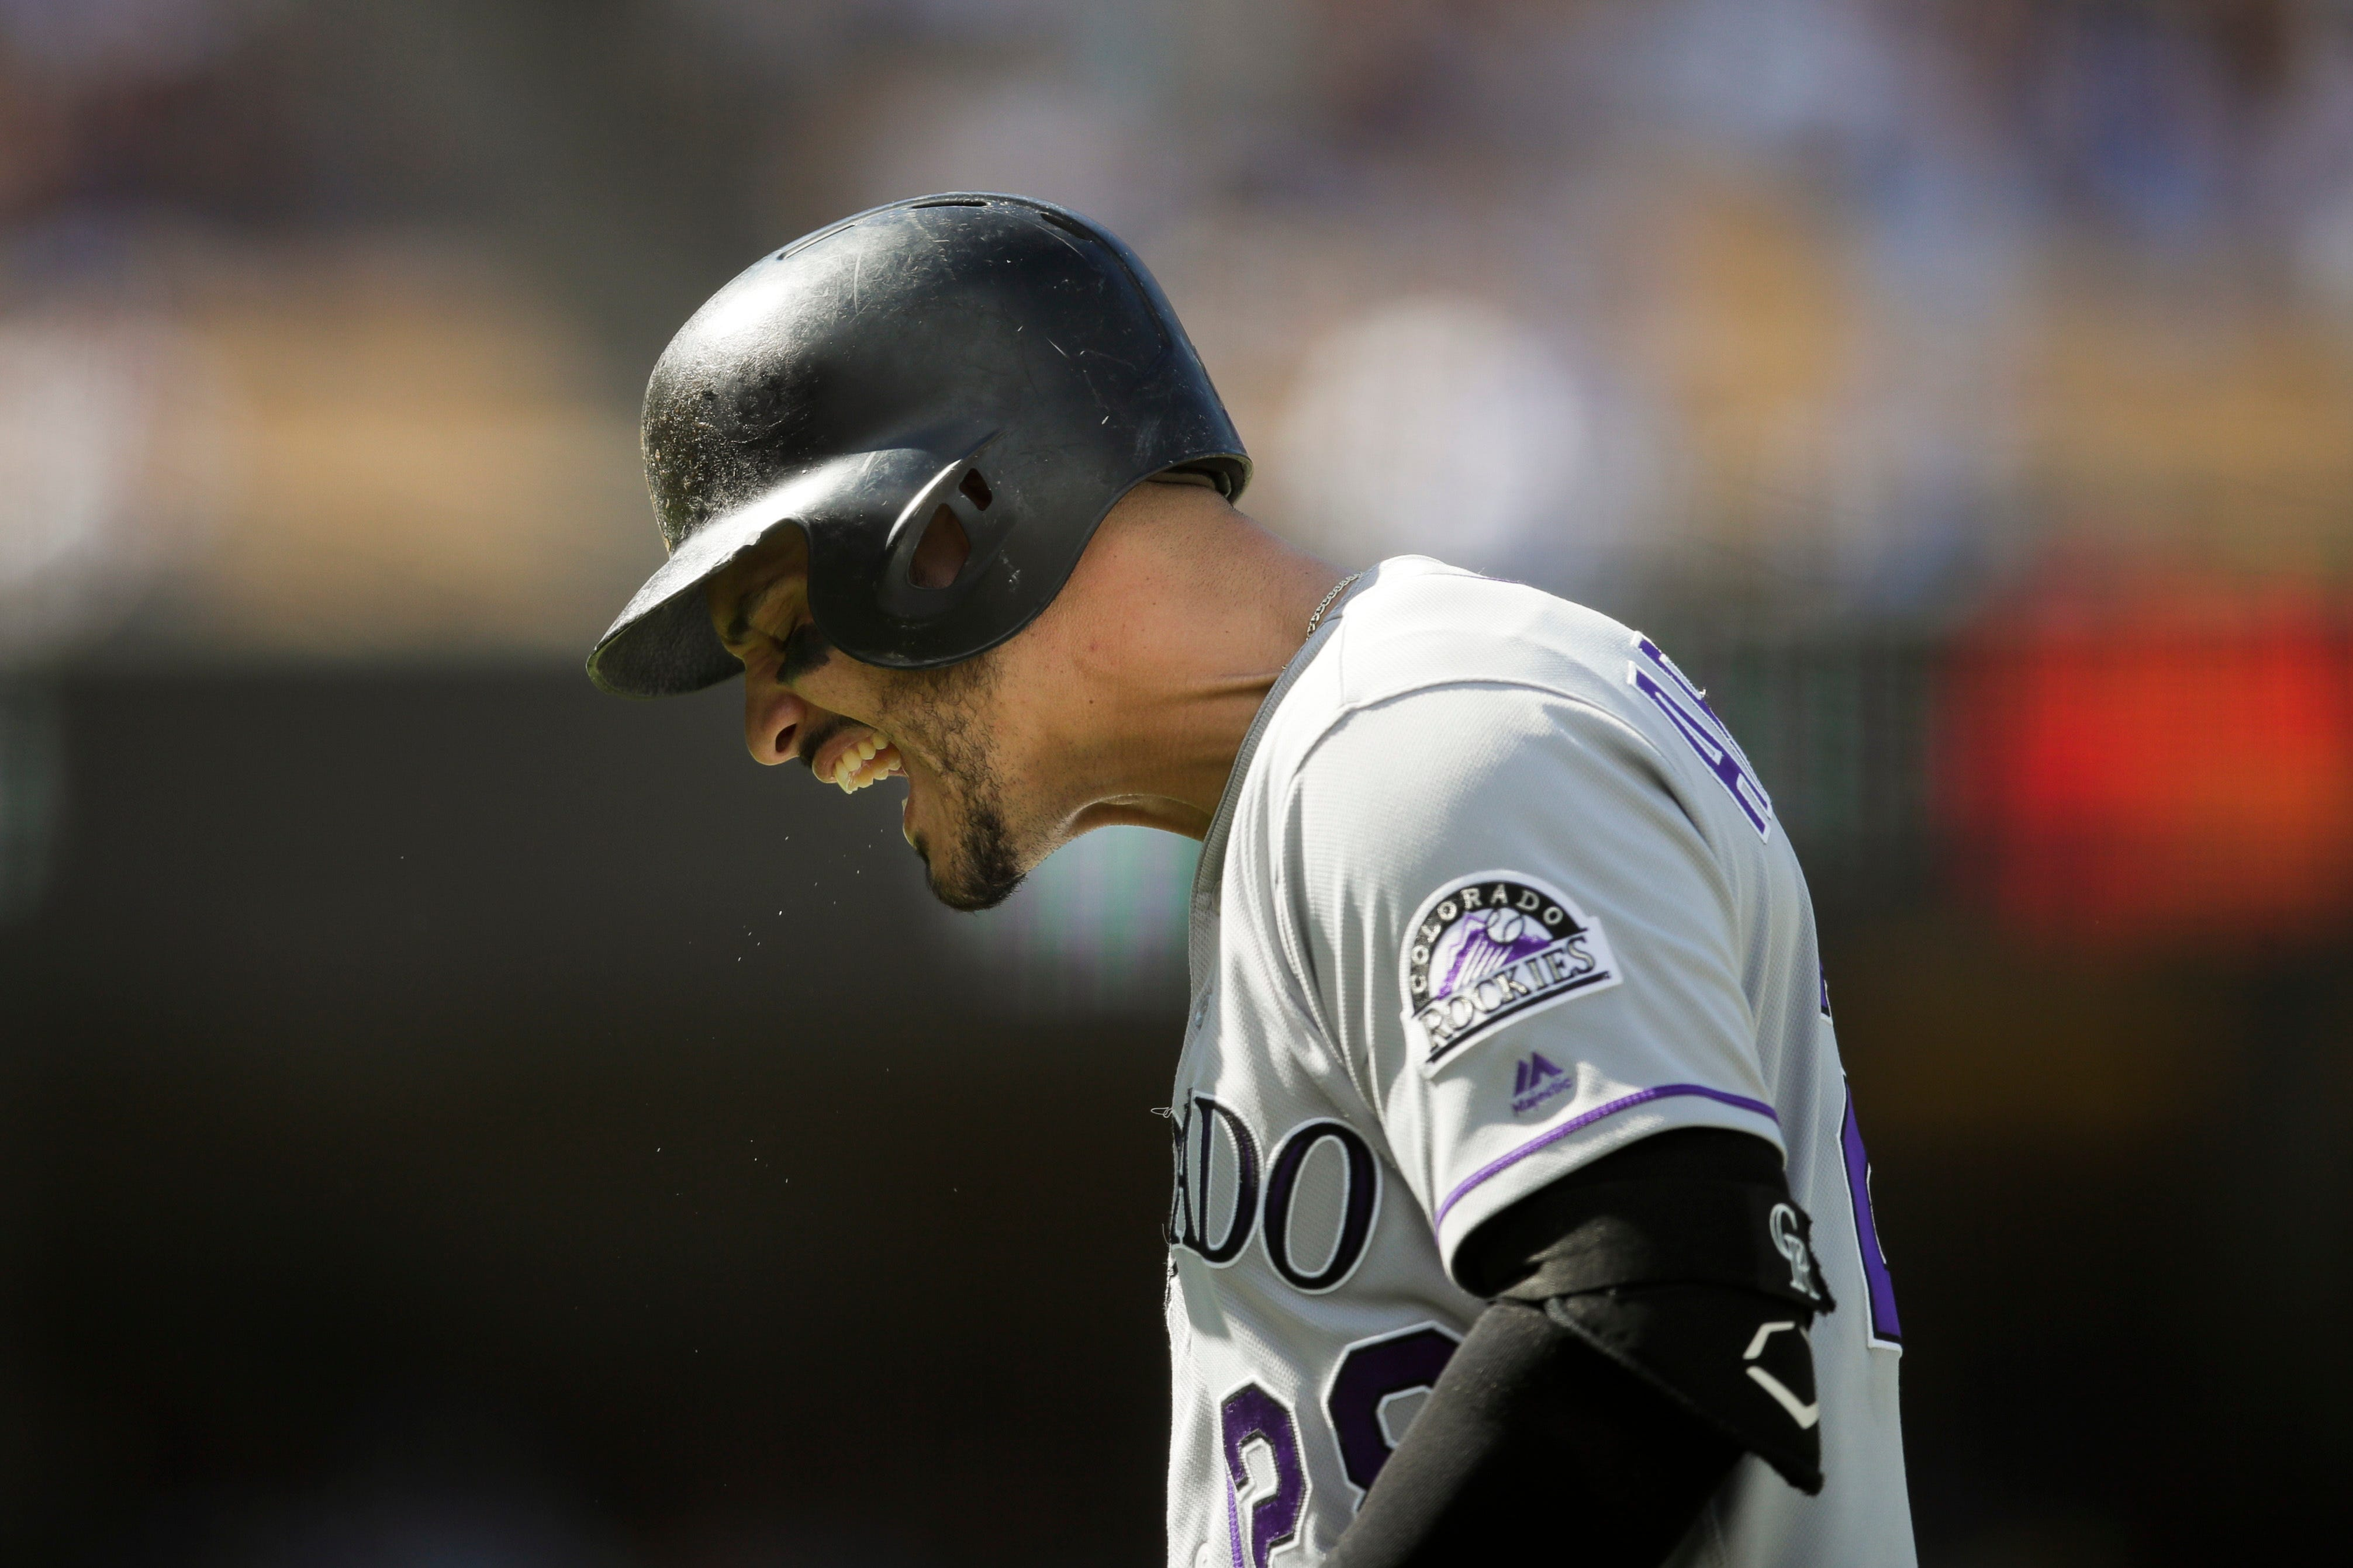 Cubs Rockies To Face Off In Nl Wild Card